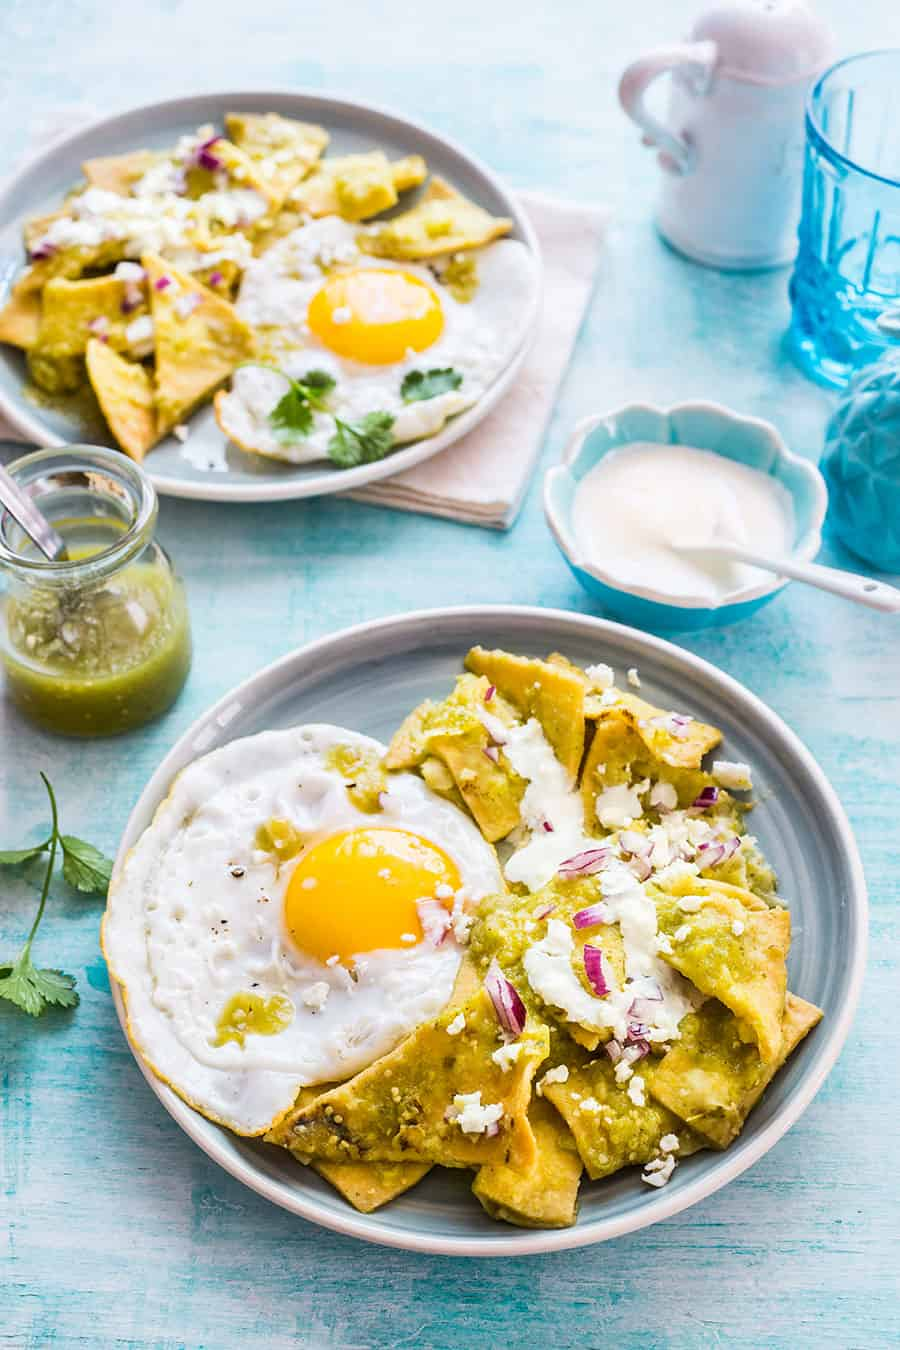 Chilaquiles verdes served with a fried egg on top.